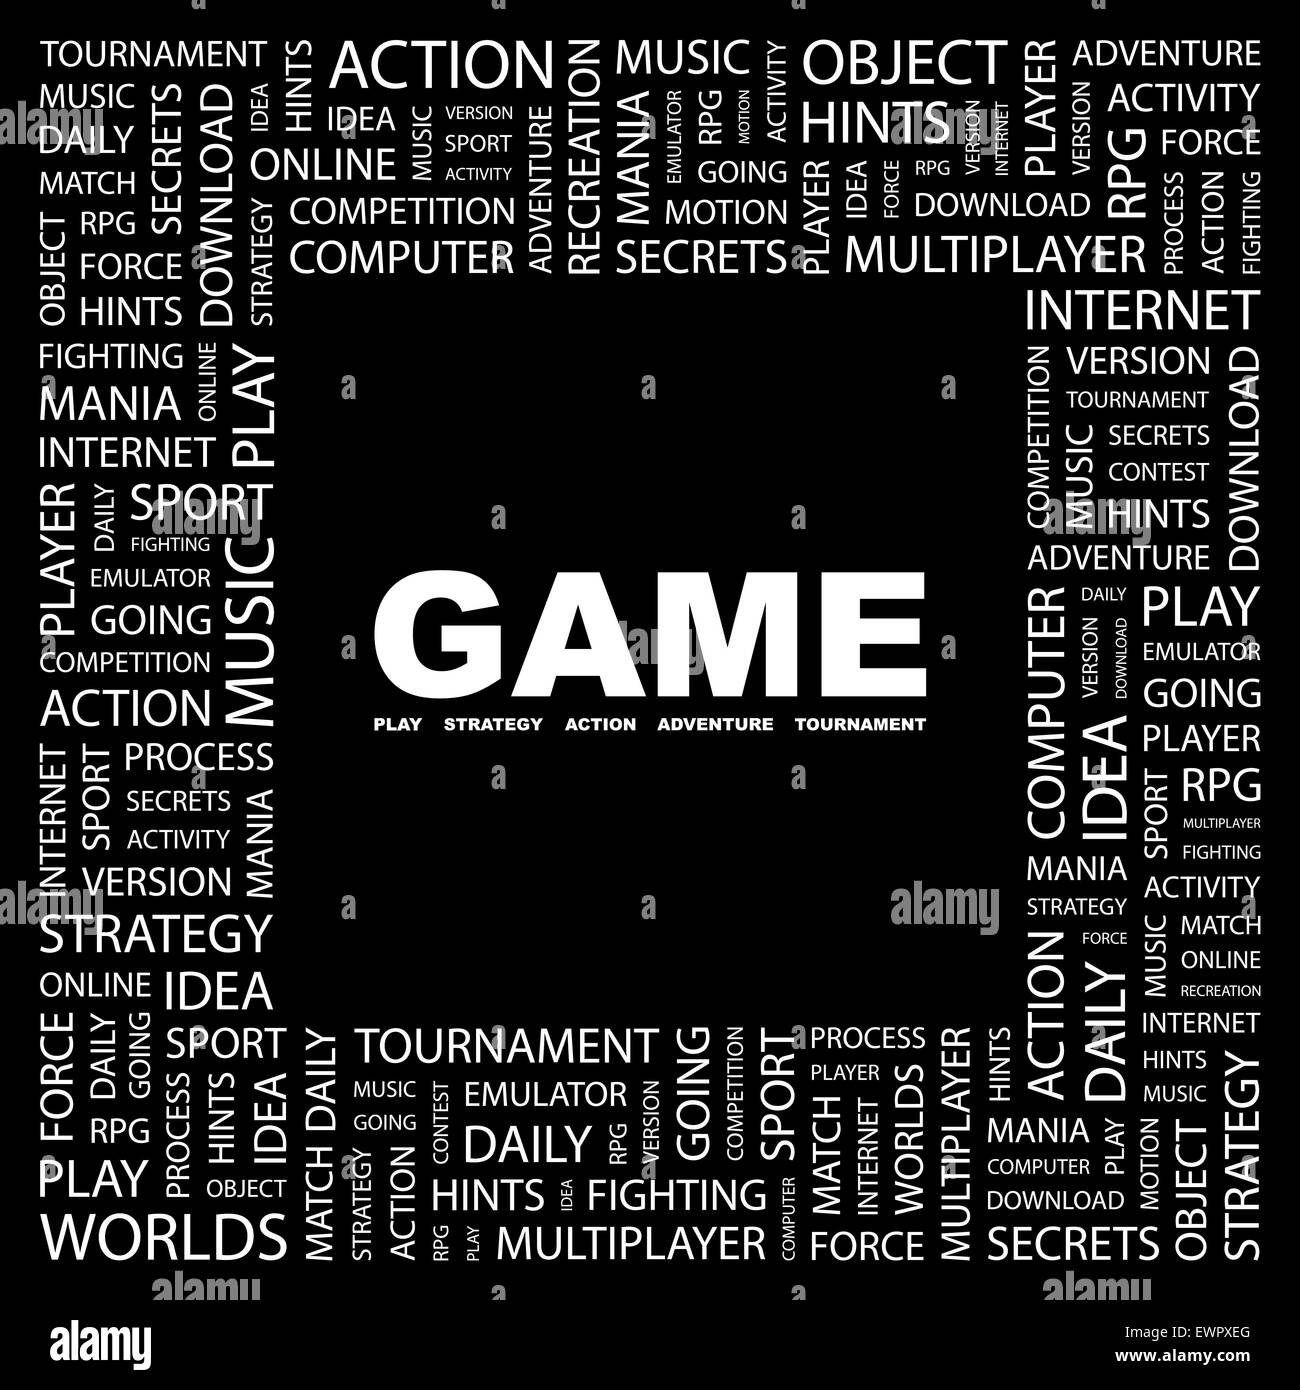 GAME. Concept illustration. Graphic tag collection. Wordcloud collage. - Stock Image